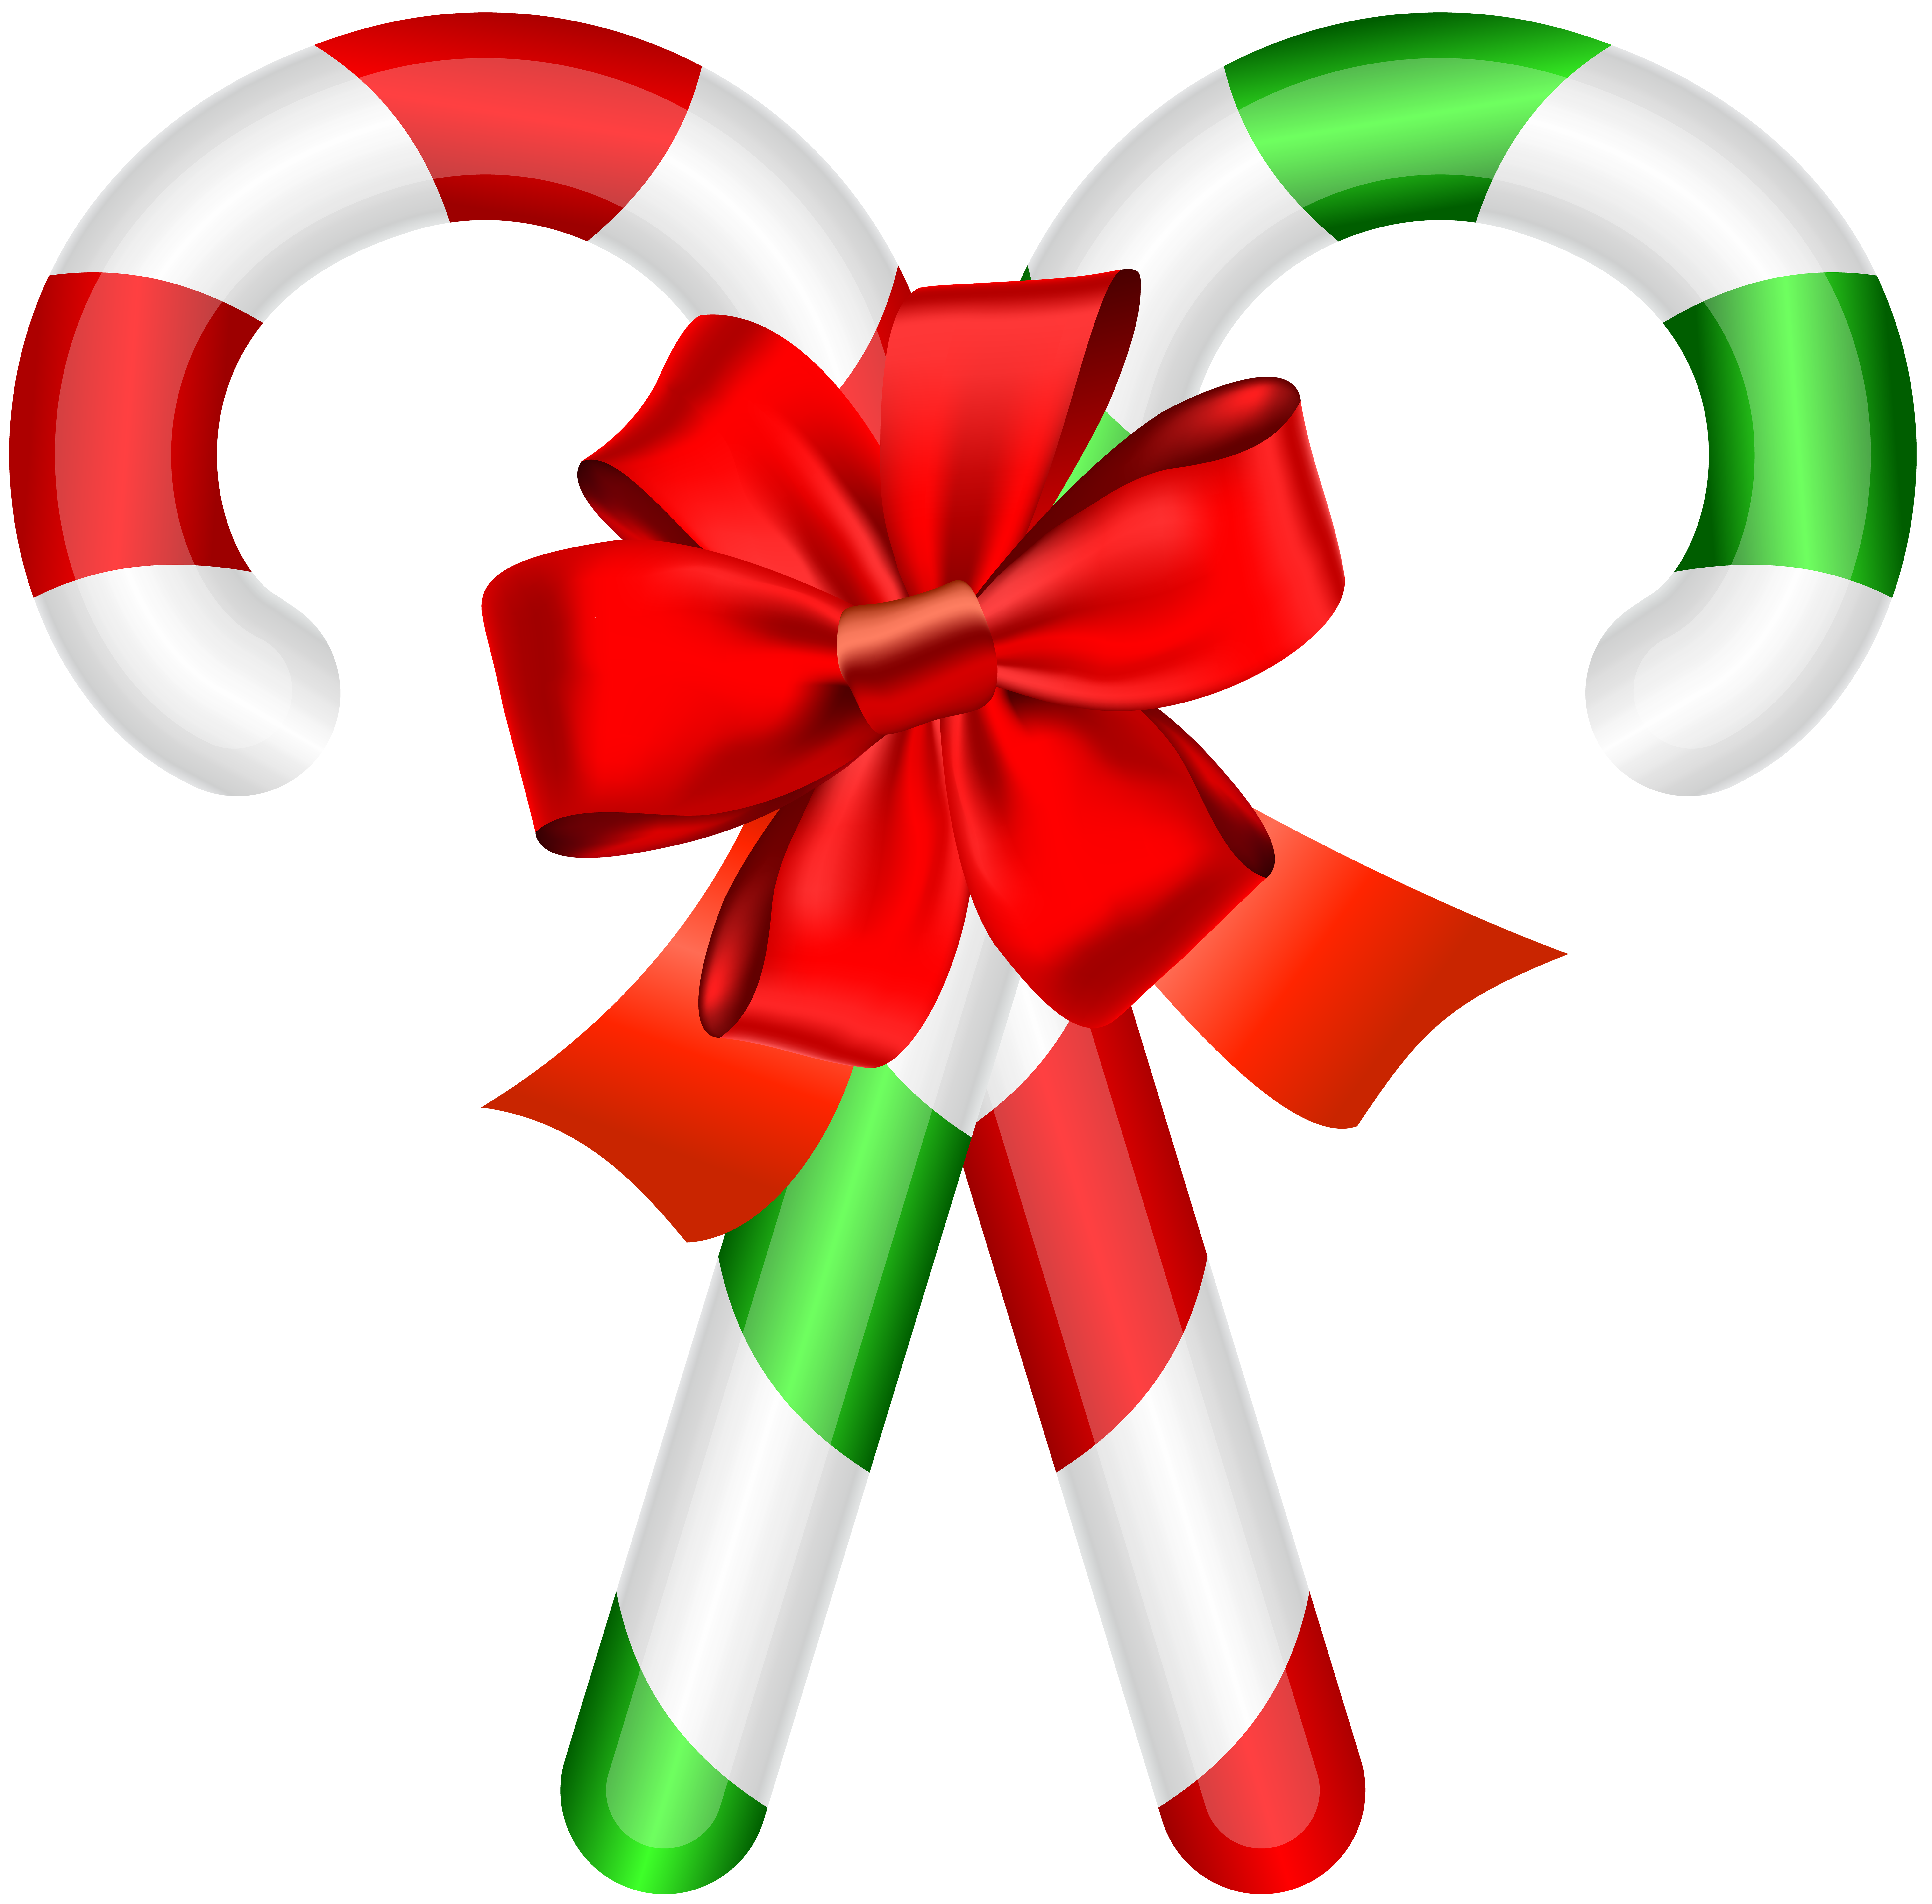 Christmas Candy Canes PNG Clip Art Image.